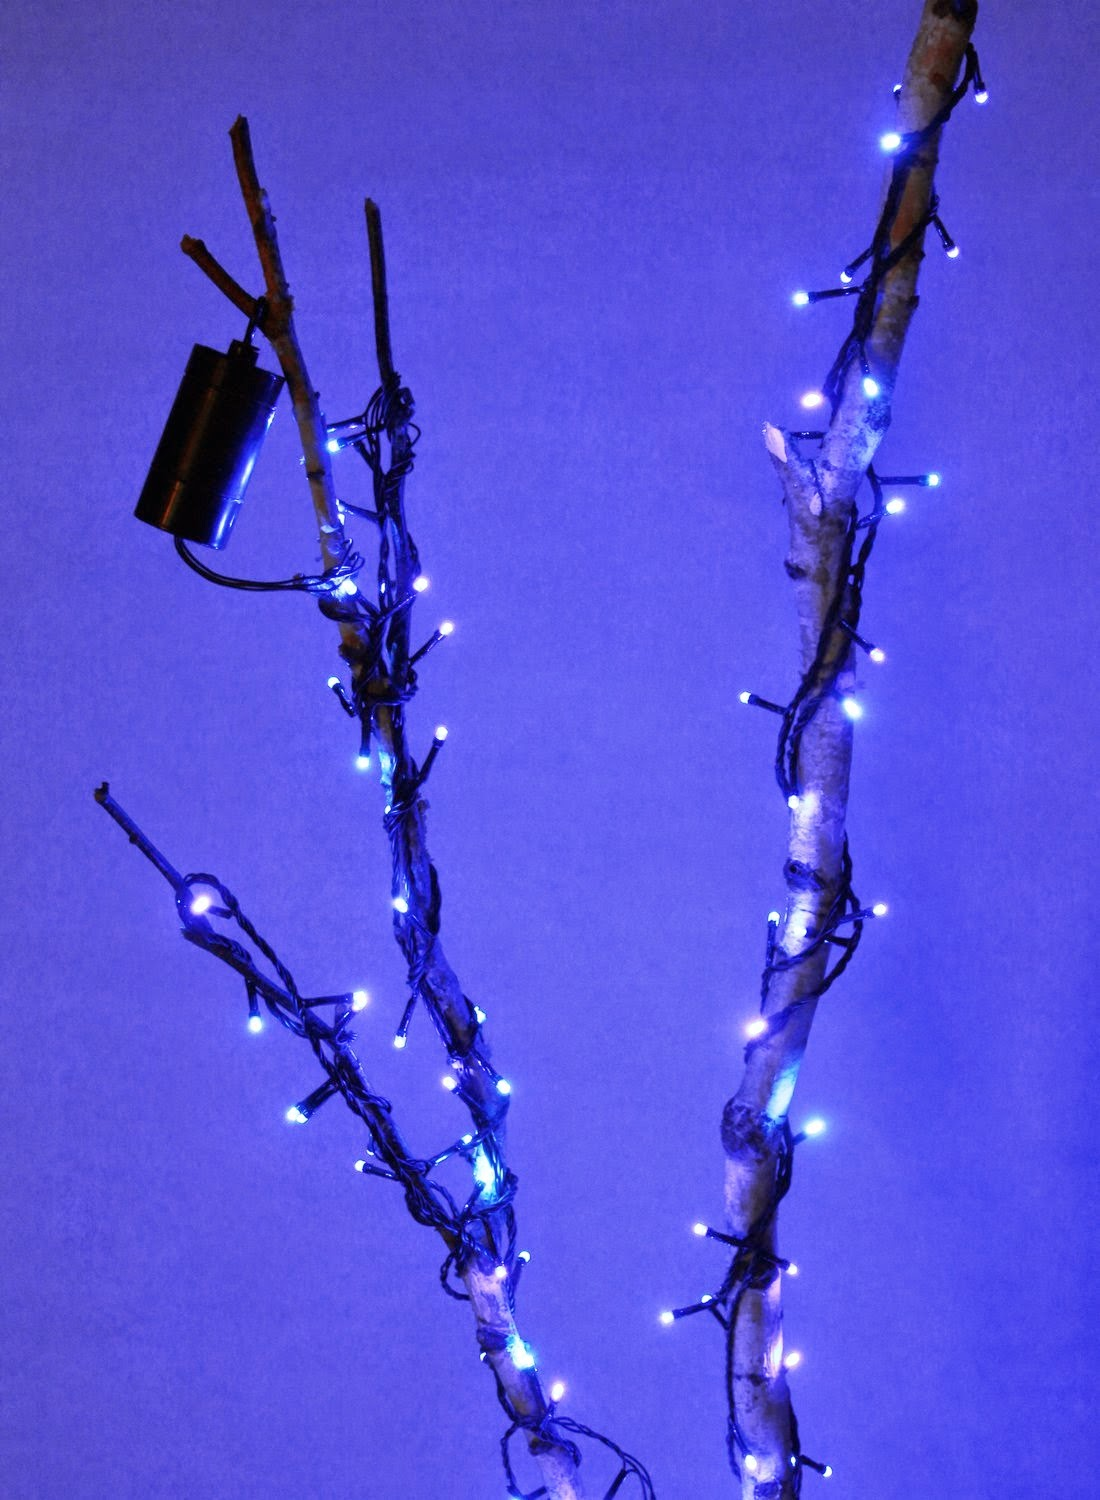 String Lights Used : Lightshare: Inspiration for Christmas String Lights Used in Other Occasions